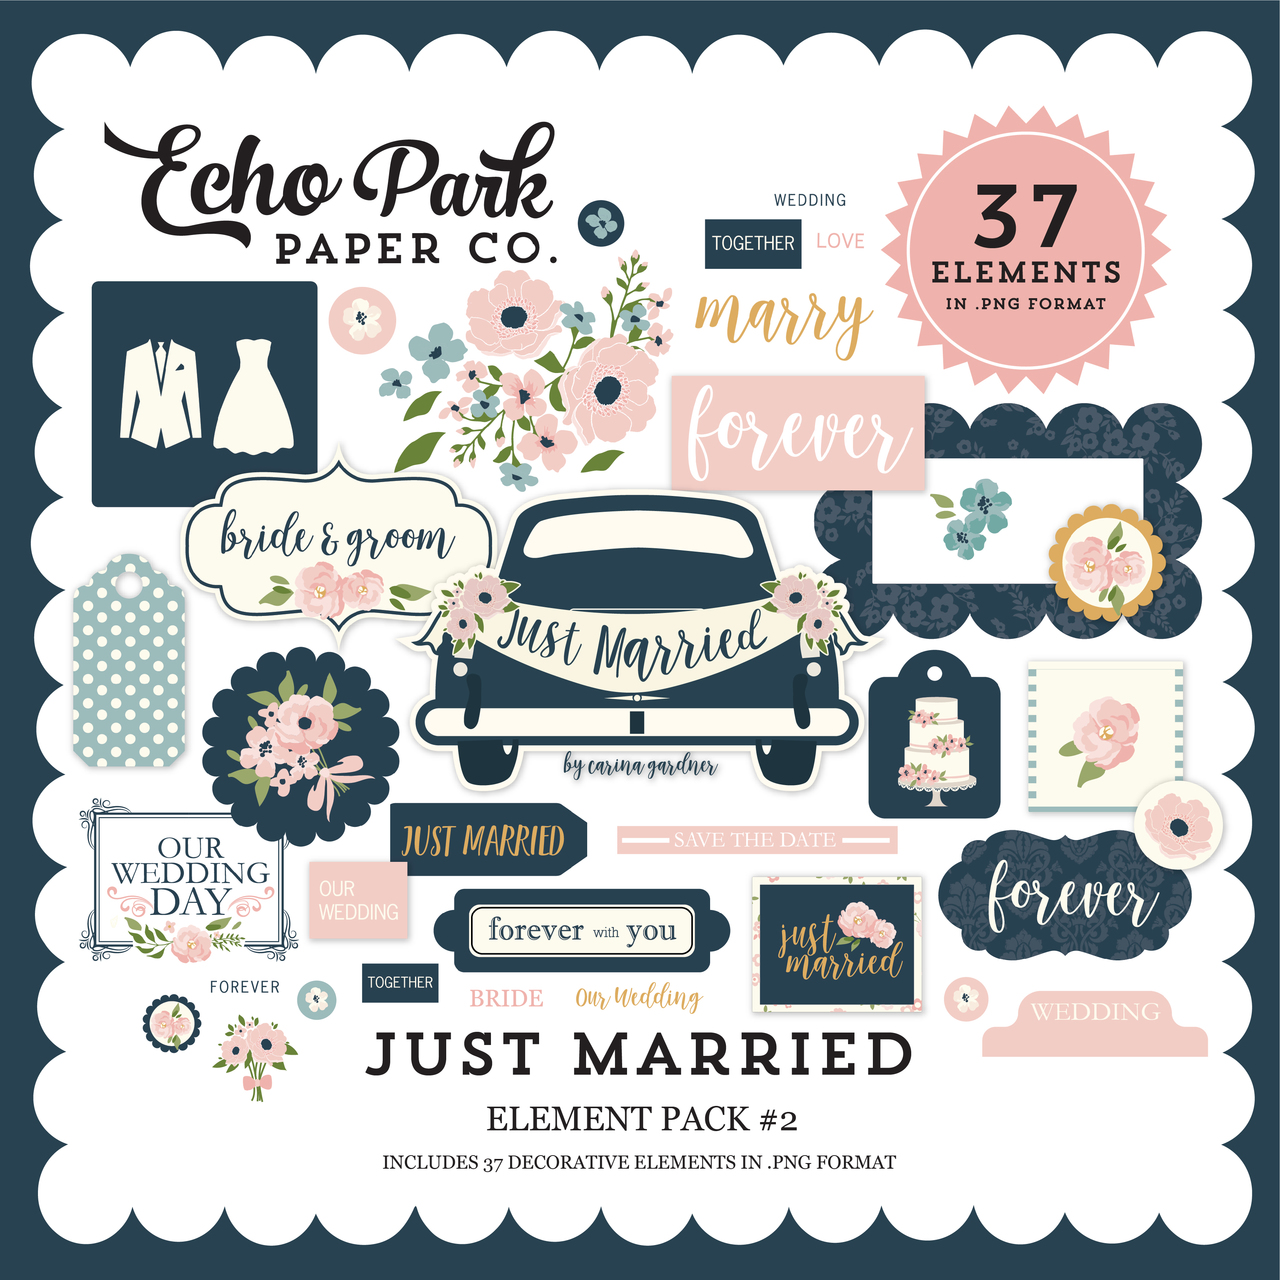 Just Married Element Pack #2